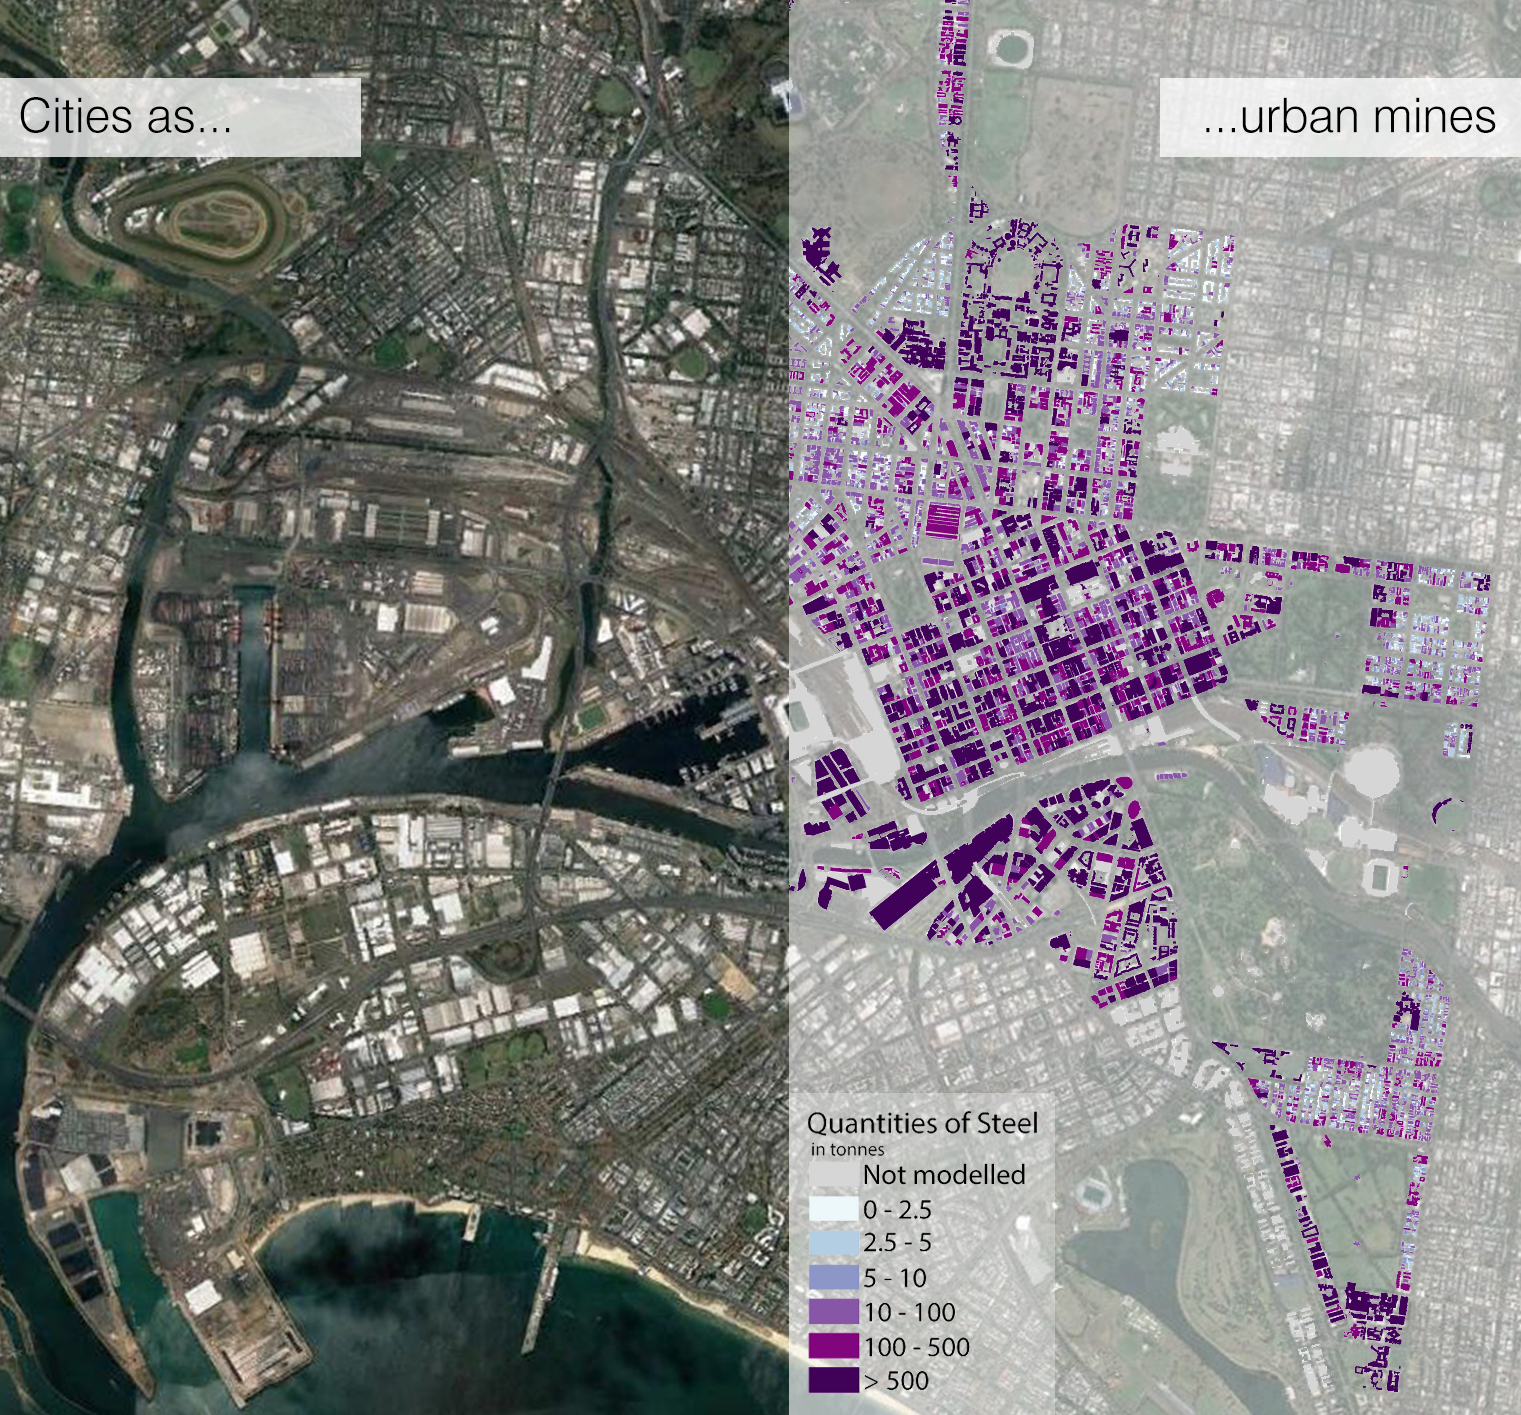 Our cities need to go on a resource diet